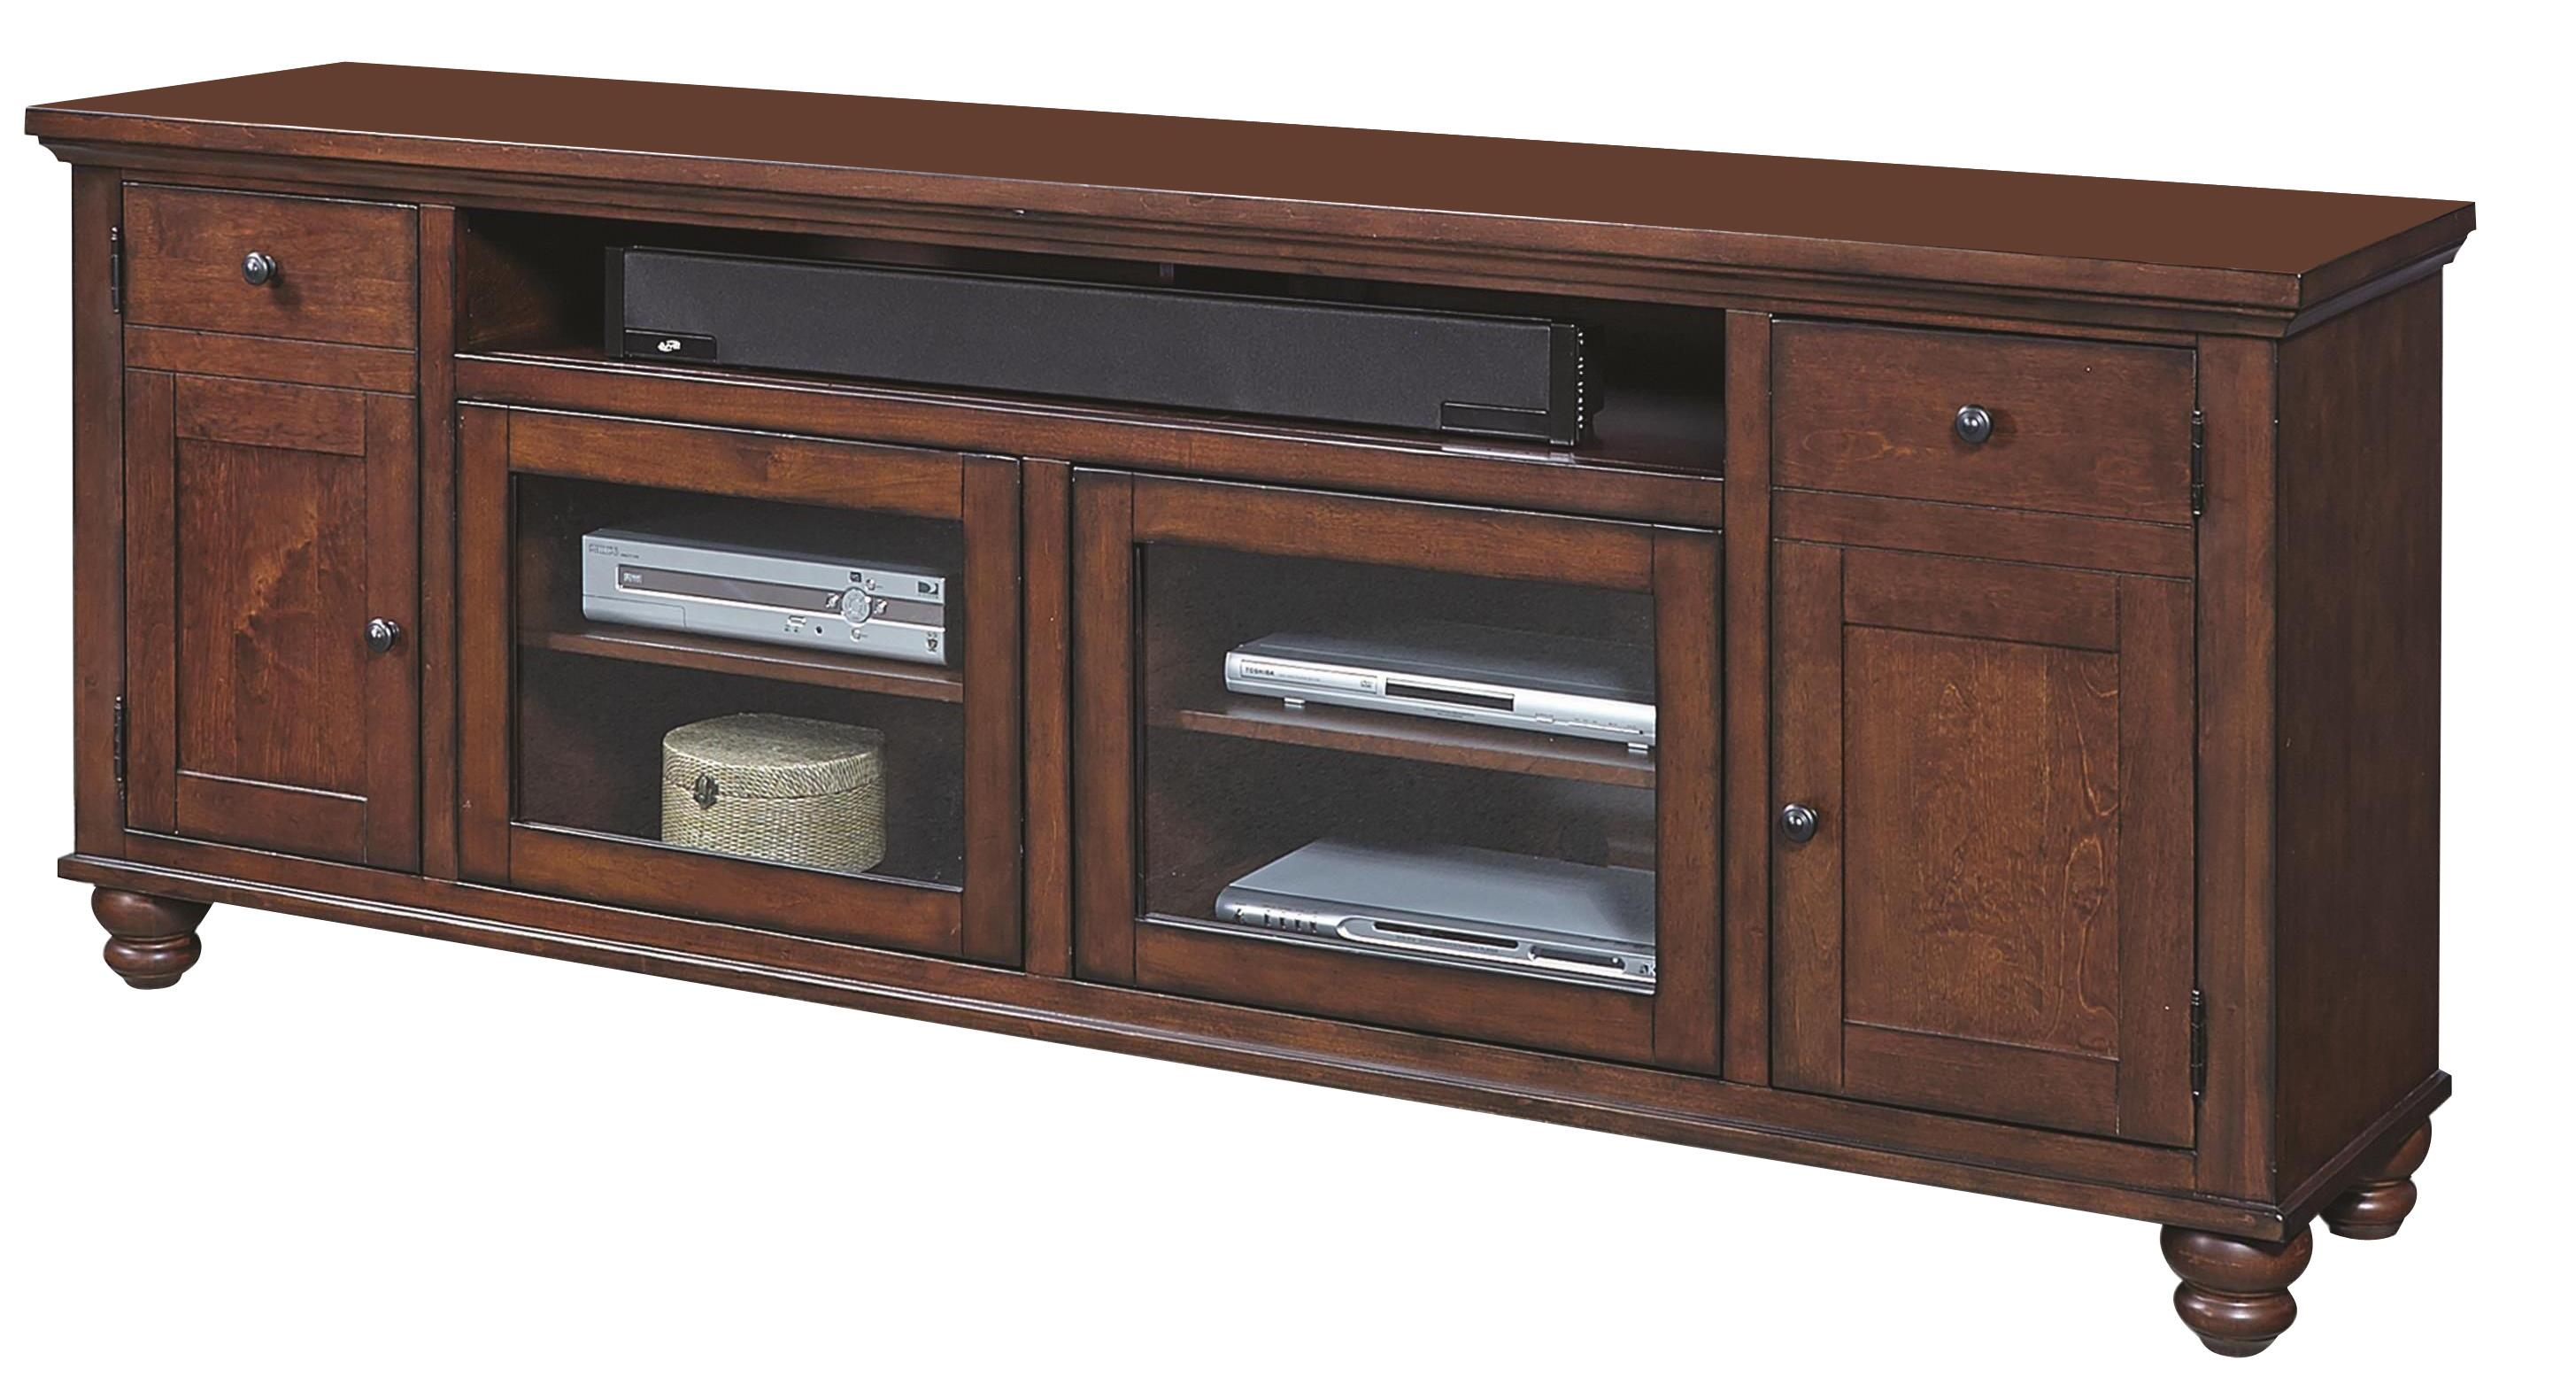 """Morris Home Furnishings Clinton Clinton 85"""" Television Console - Item Number: 340800449"""